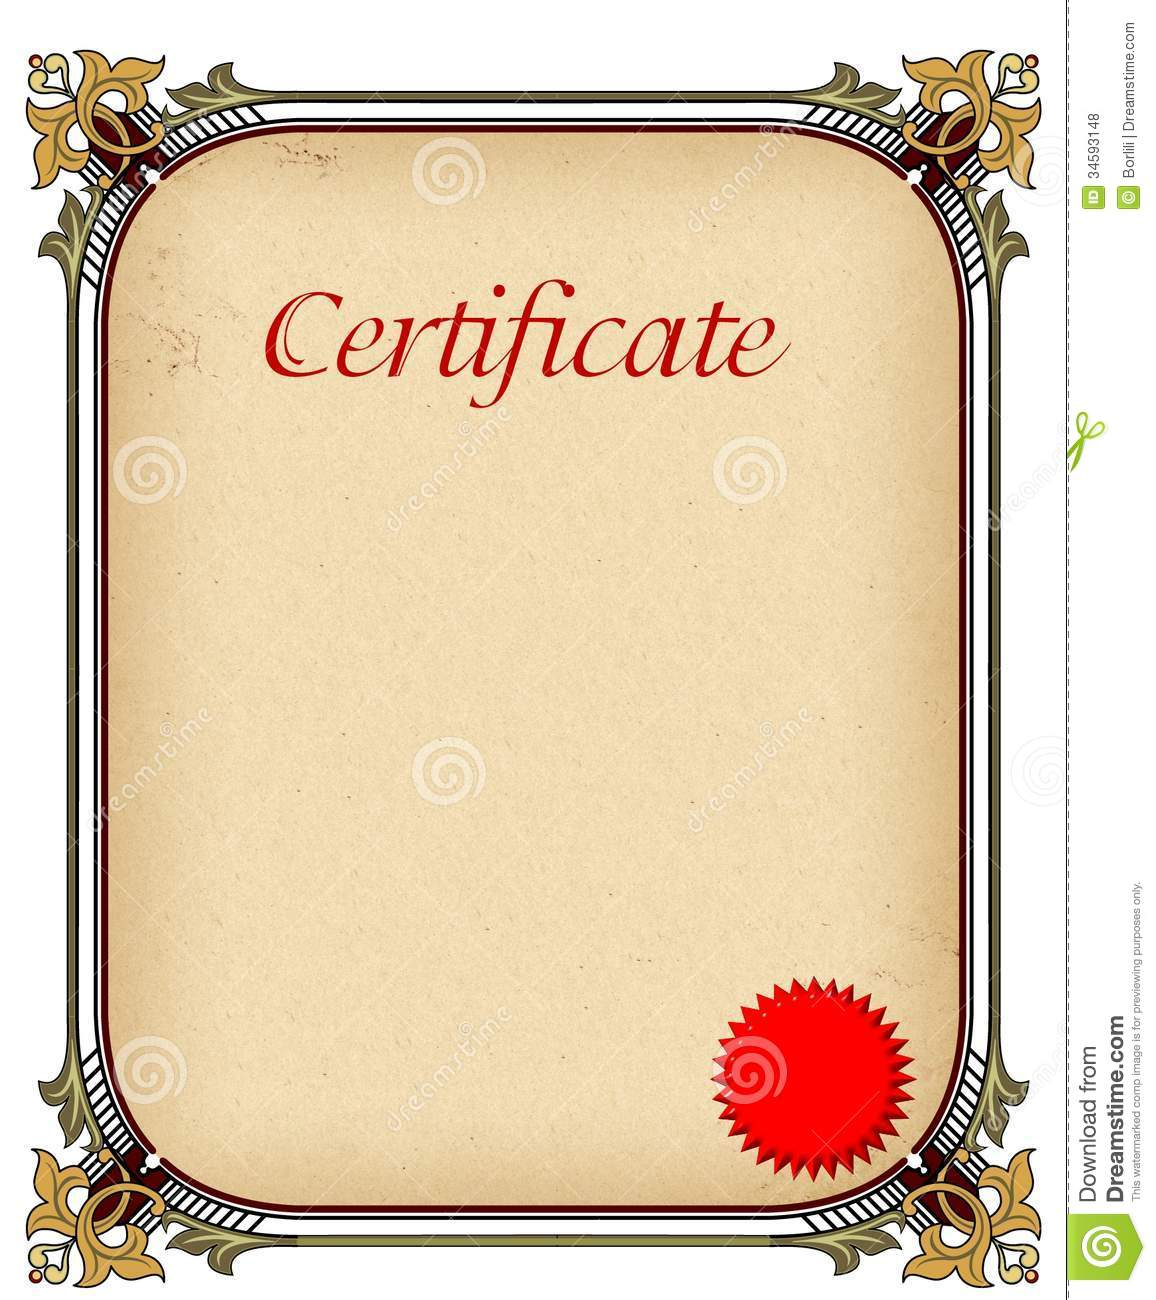 Certificate of completion template stock illustration image certificate of completion template alramifo Choice Image